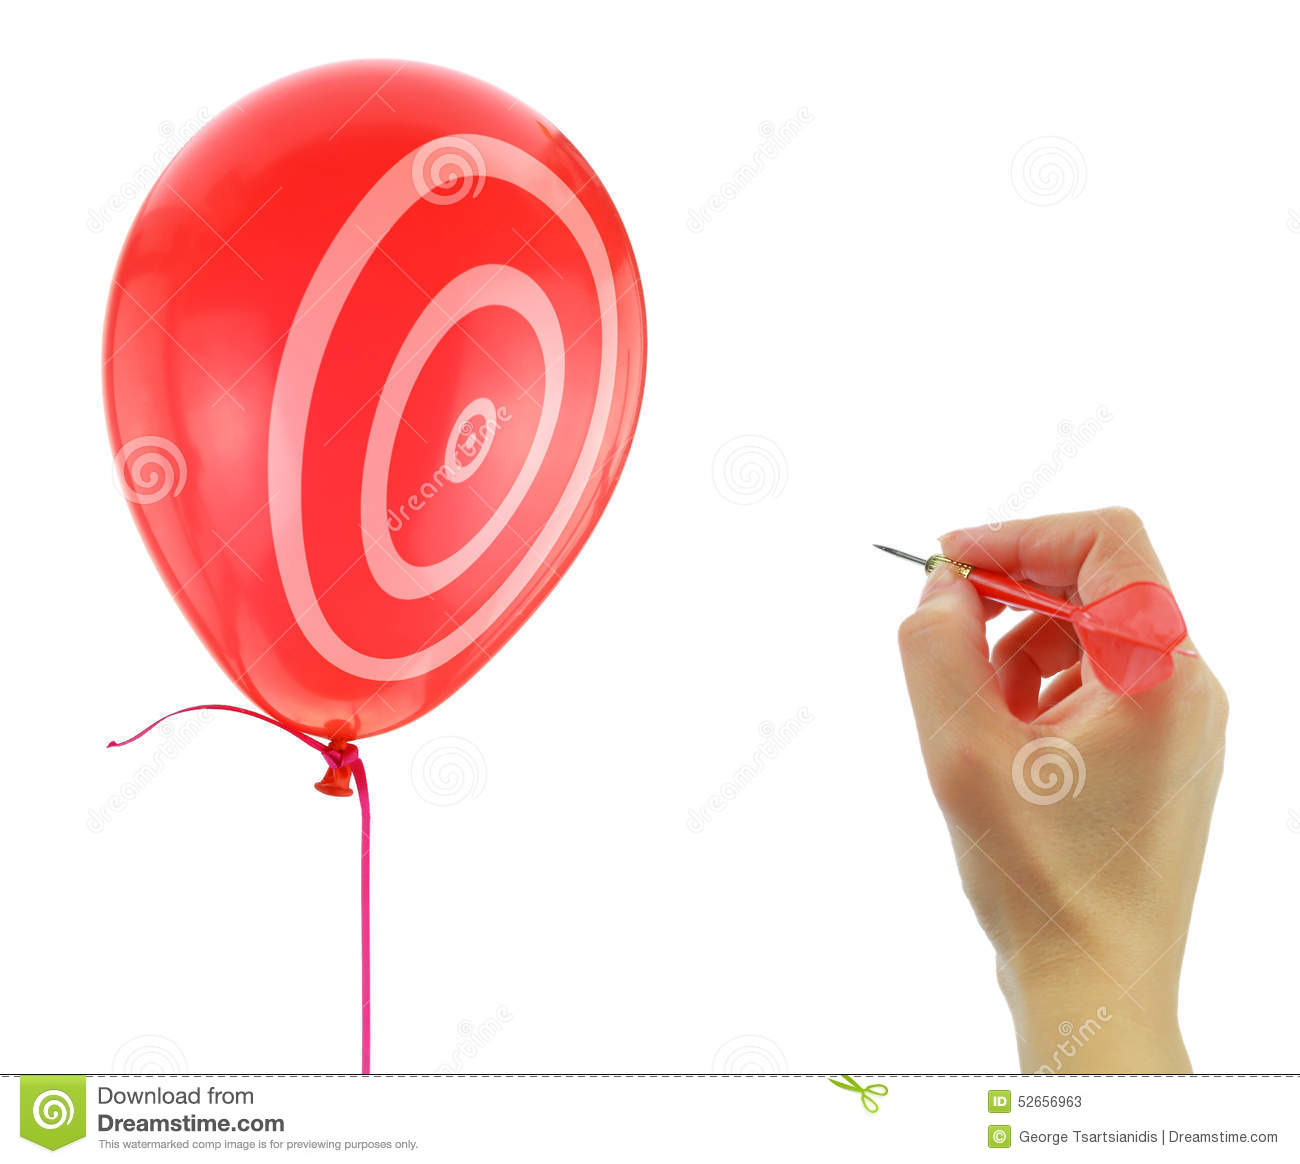 Dart about to pop a balloon